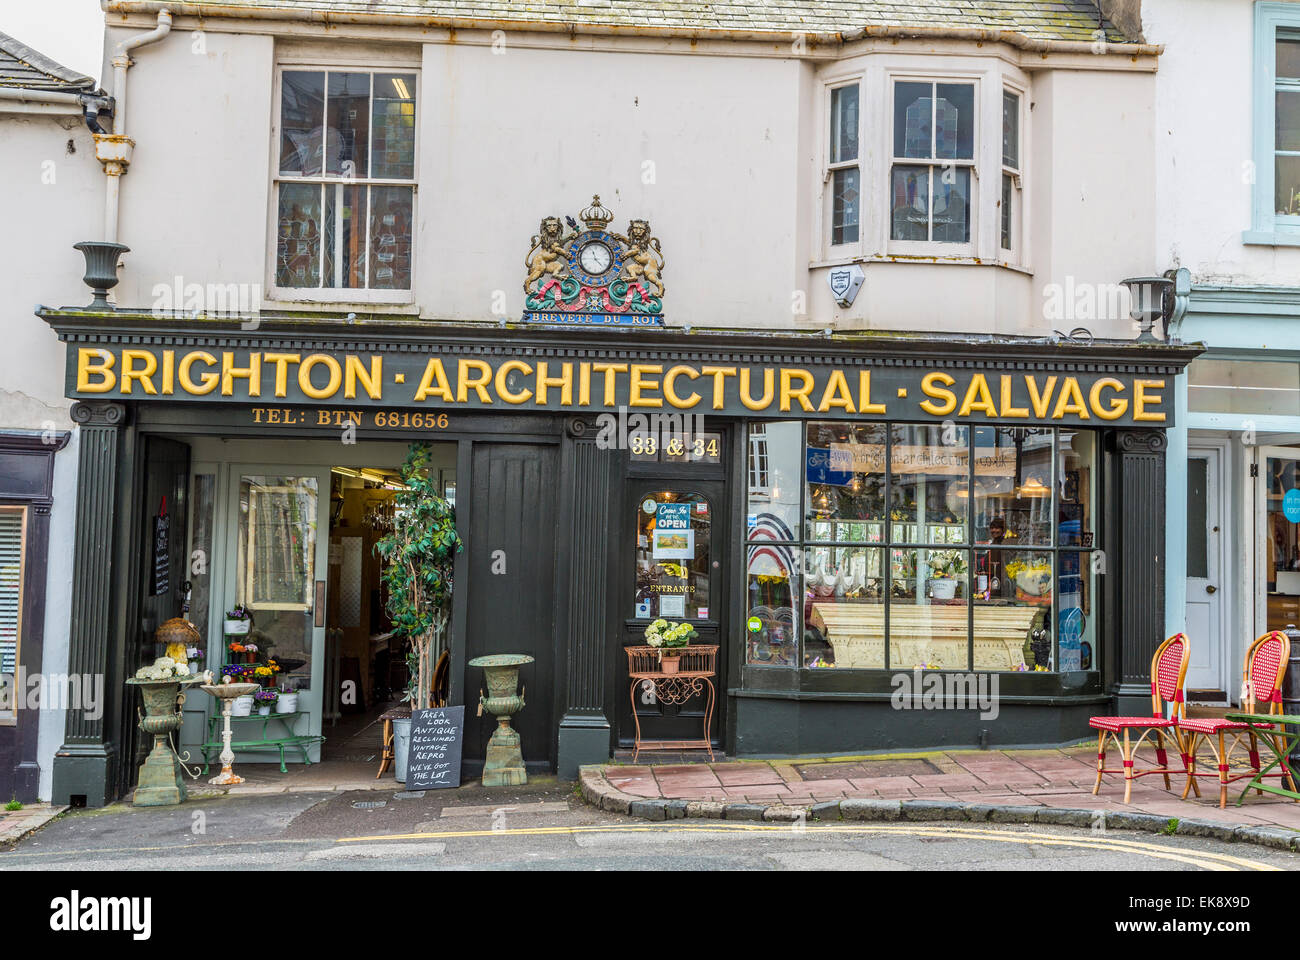 A Landscape image of Brighton Architectural Salvage - Stock Image